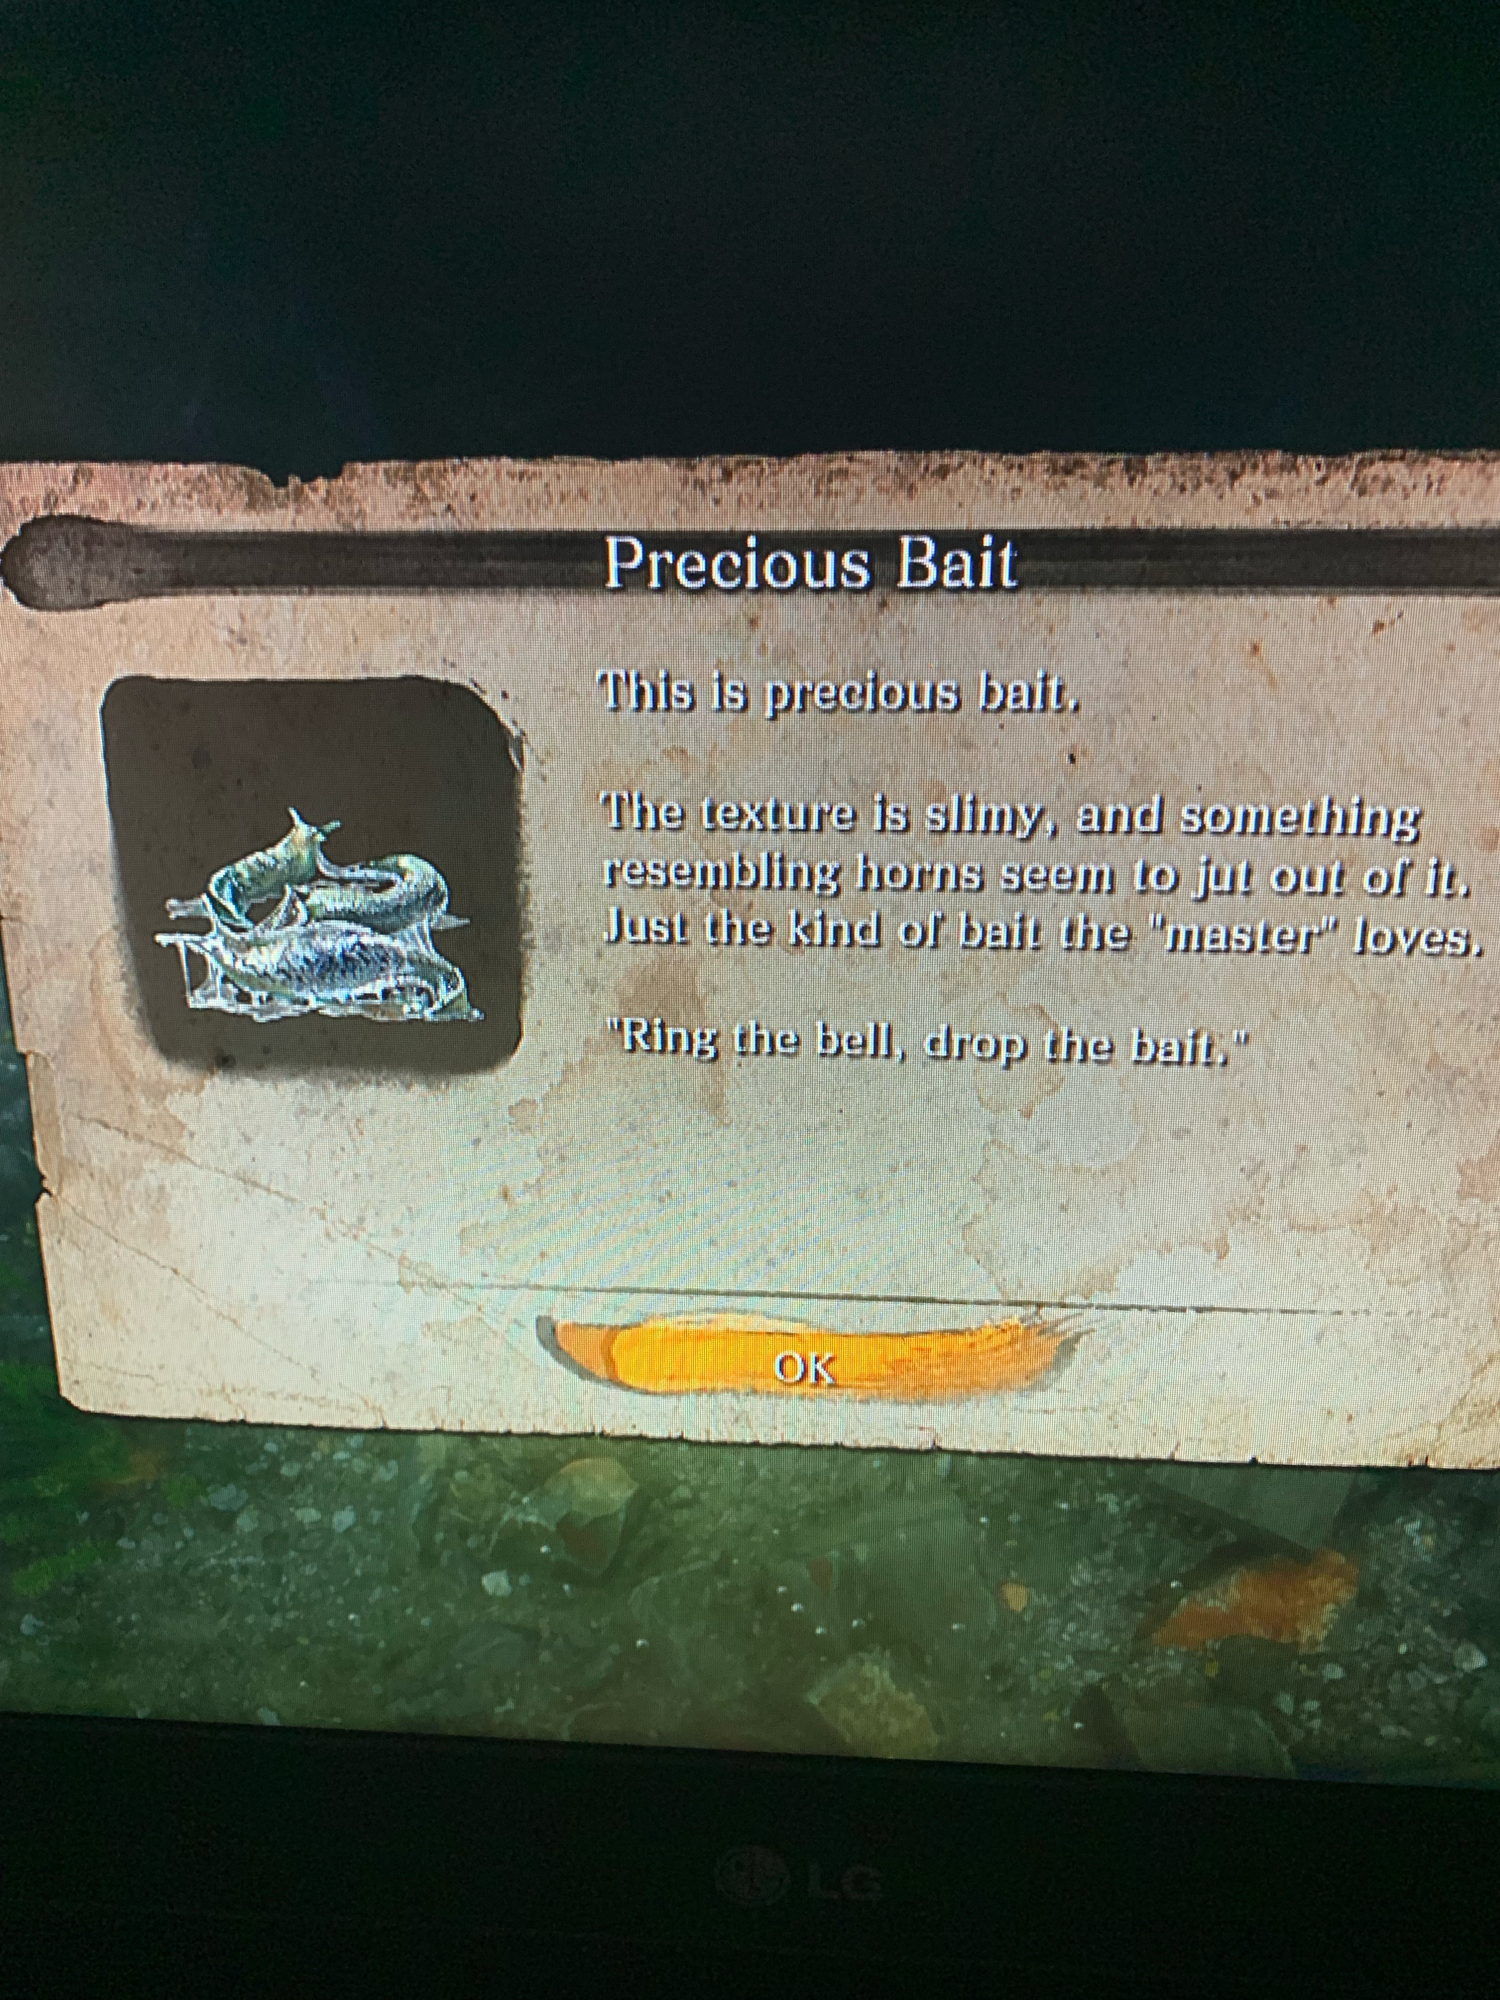 Found this in Sekiro today & almost lost my mind!!!!